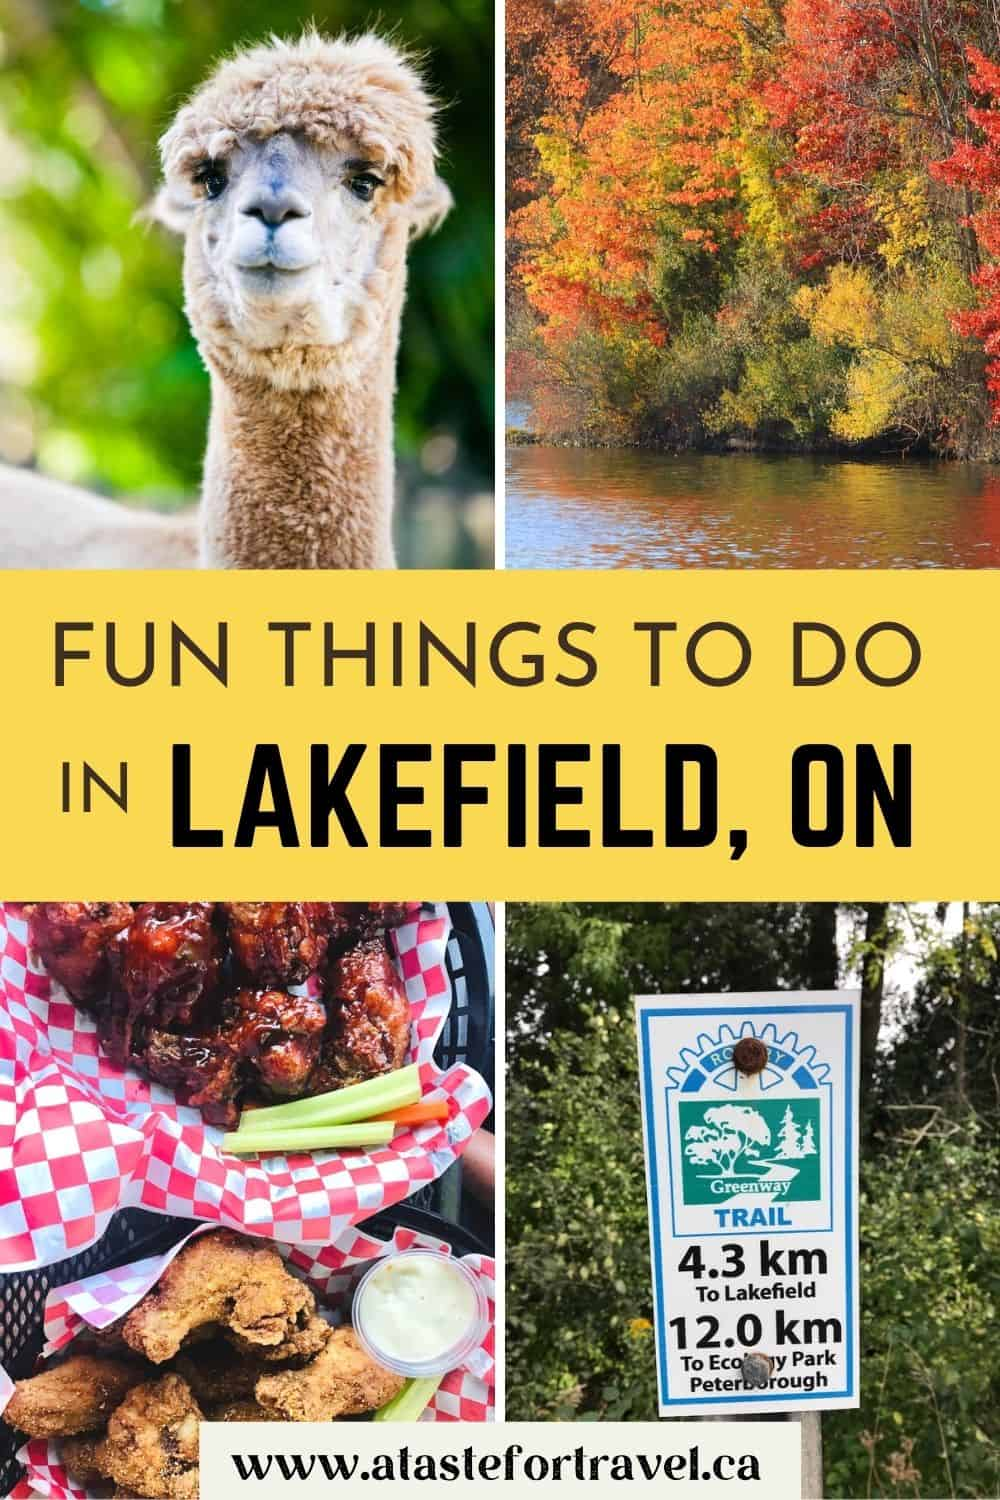 Collage of images of Lakefield, Ontario.